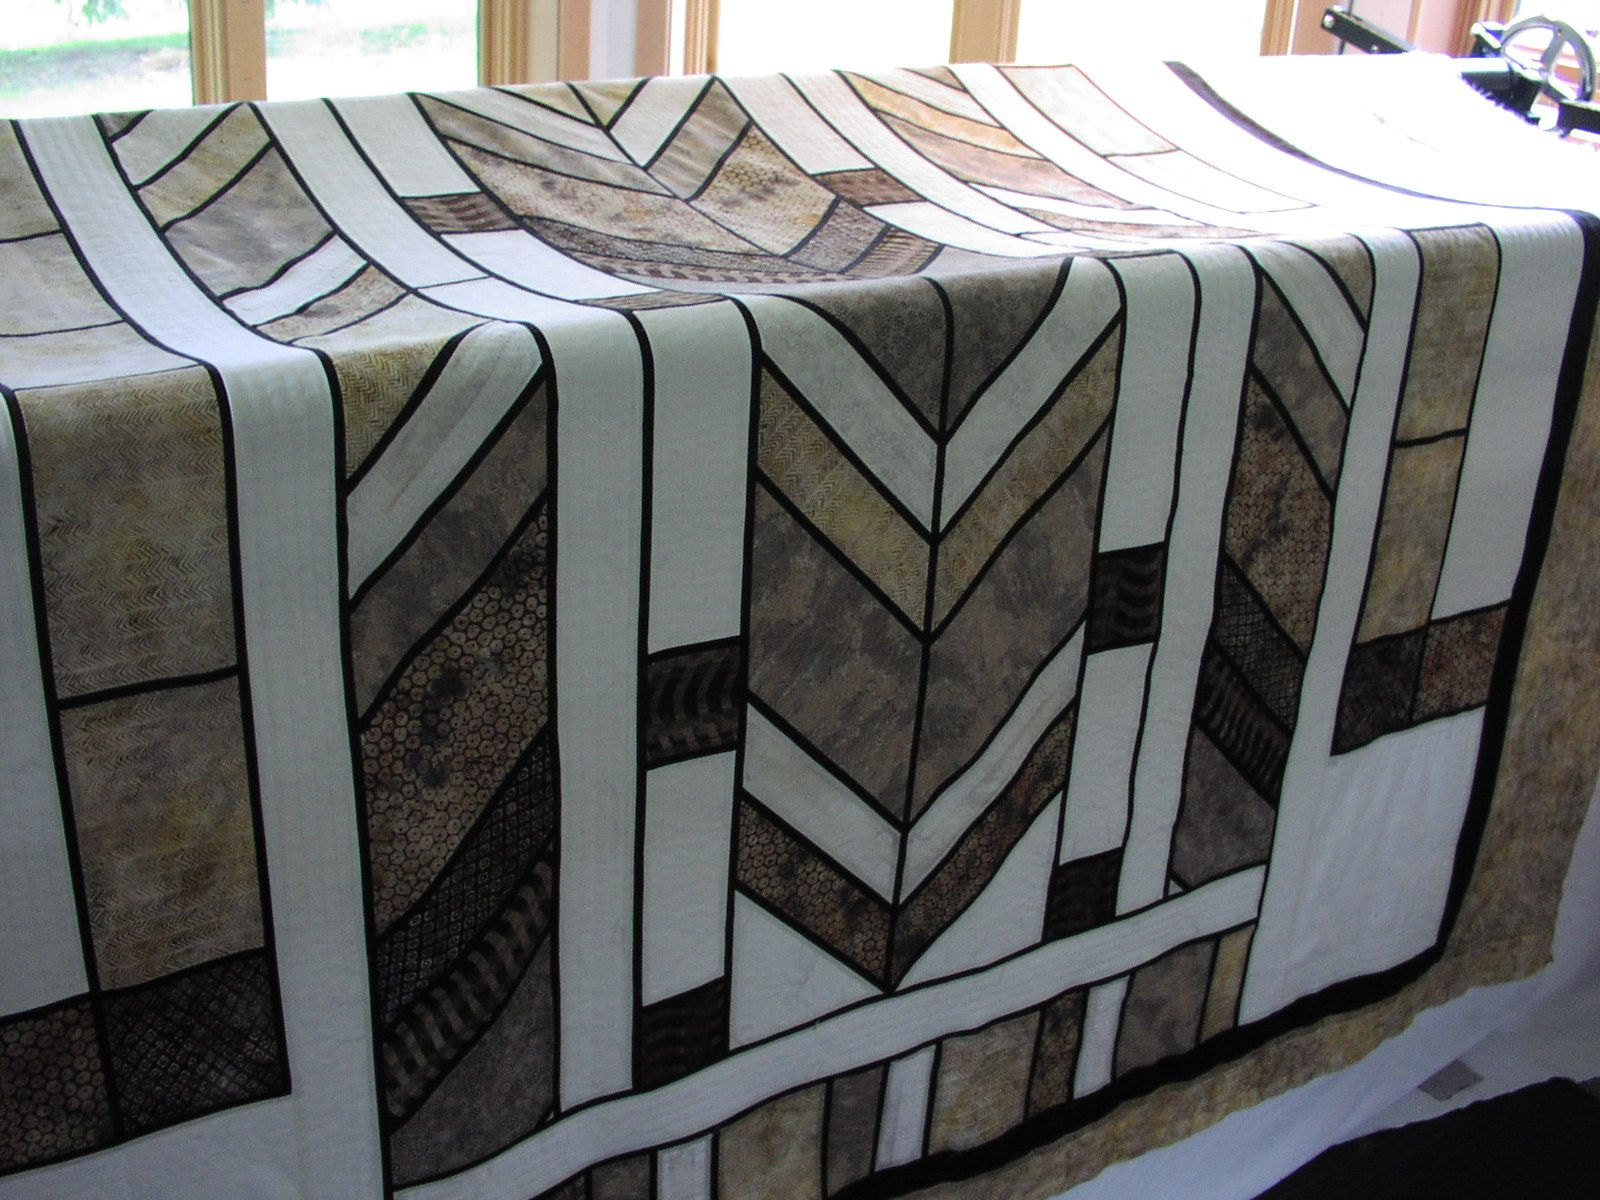 Frank Lloyd Wright Inspired Quilt All Things Quilt